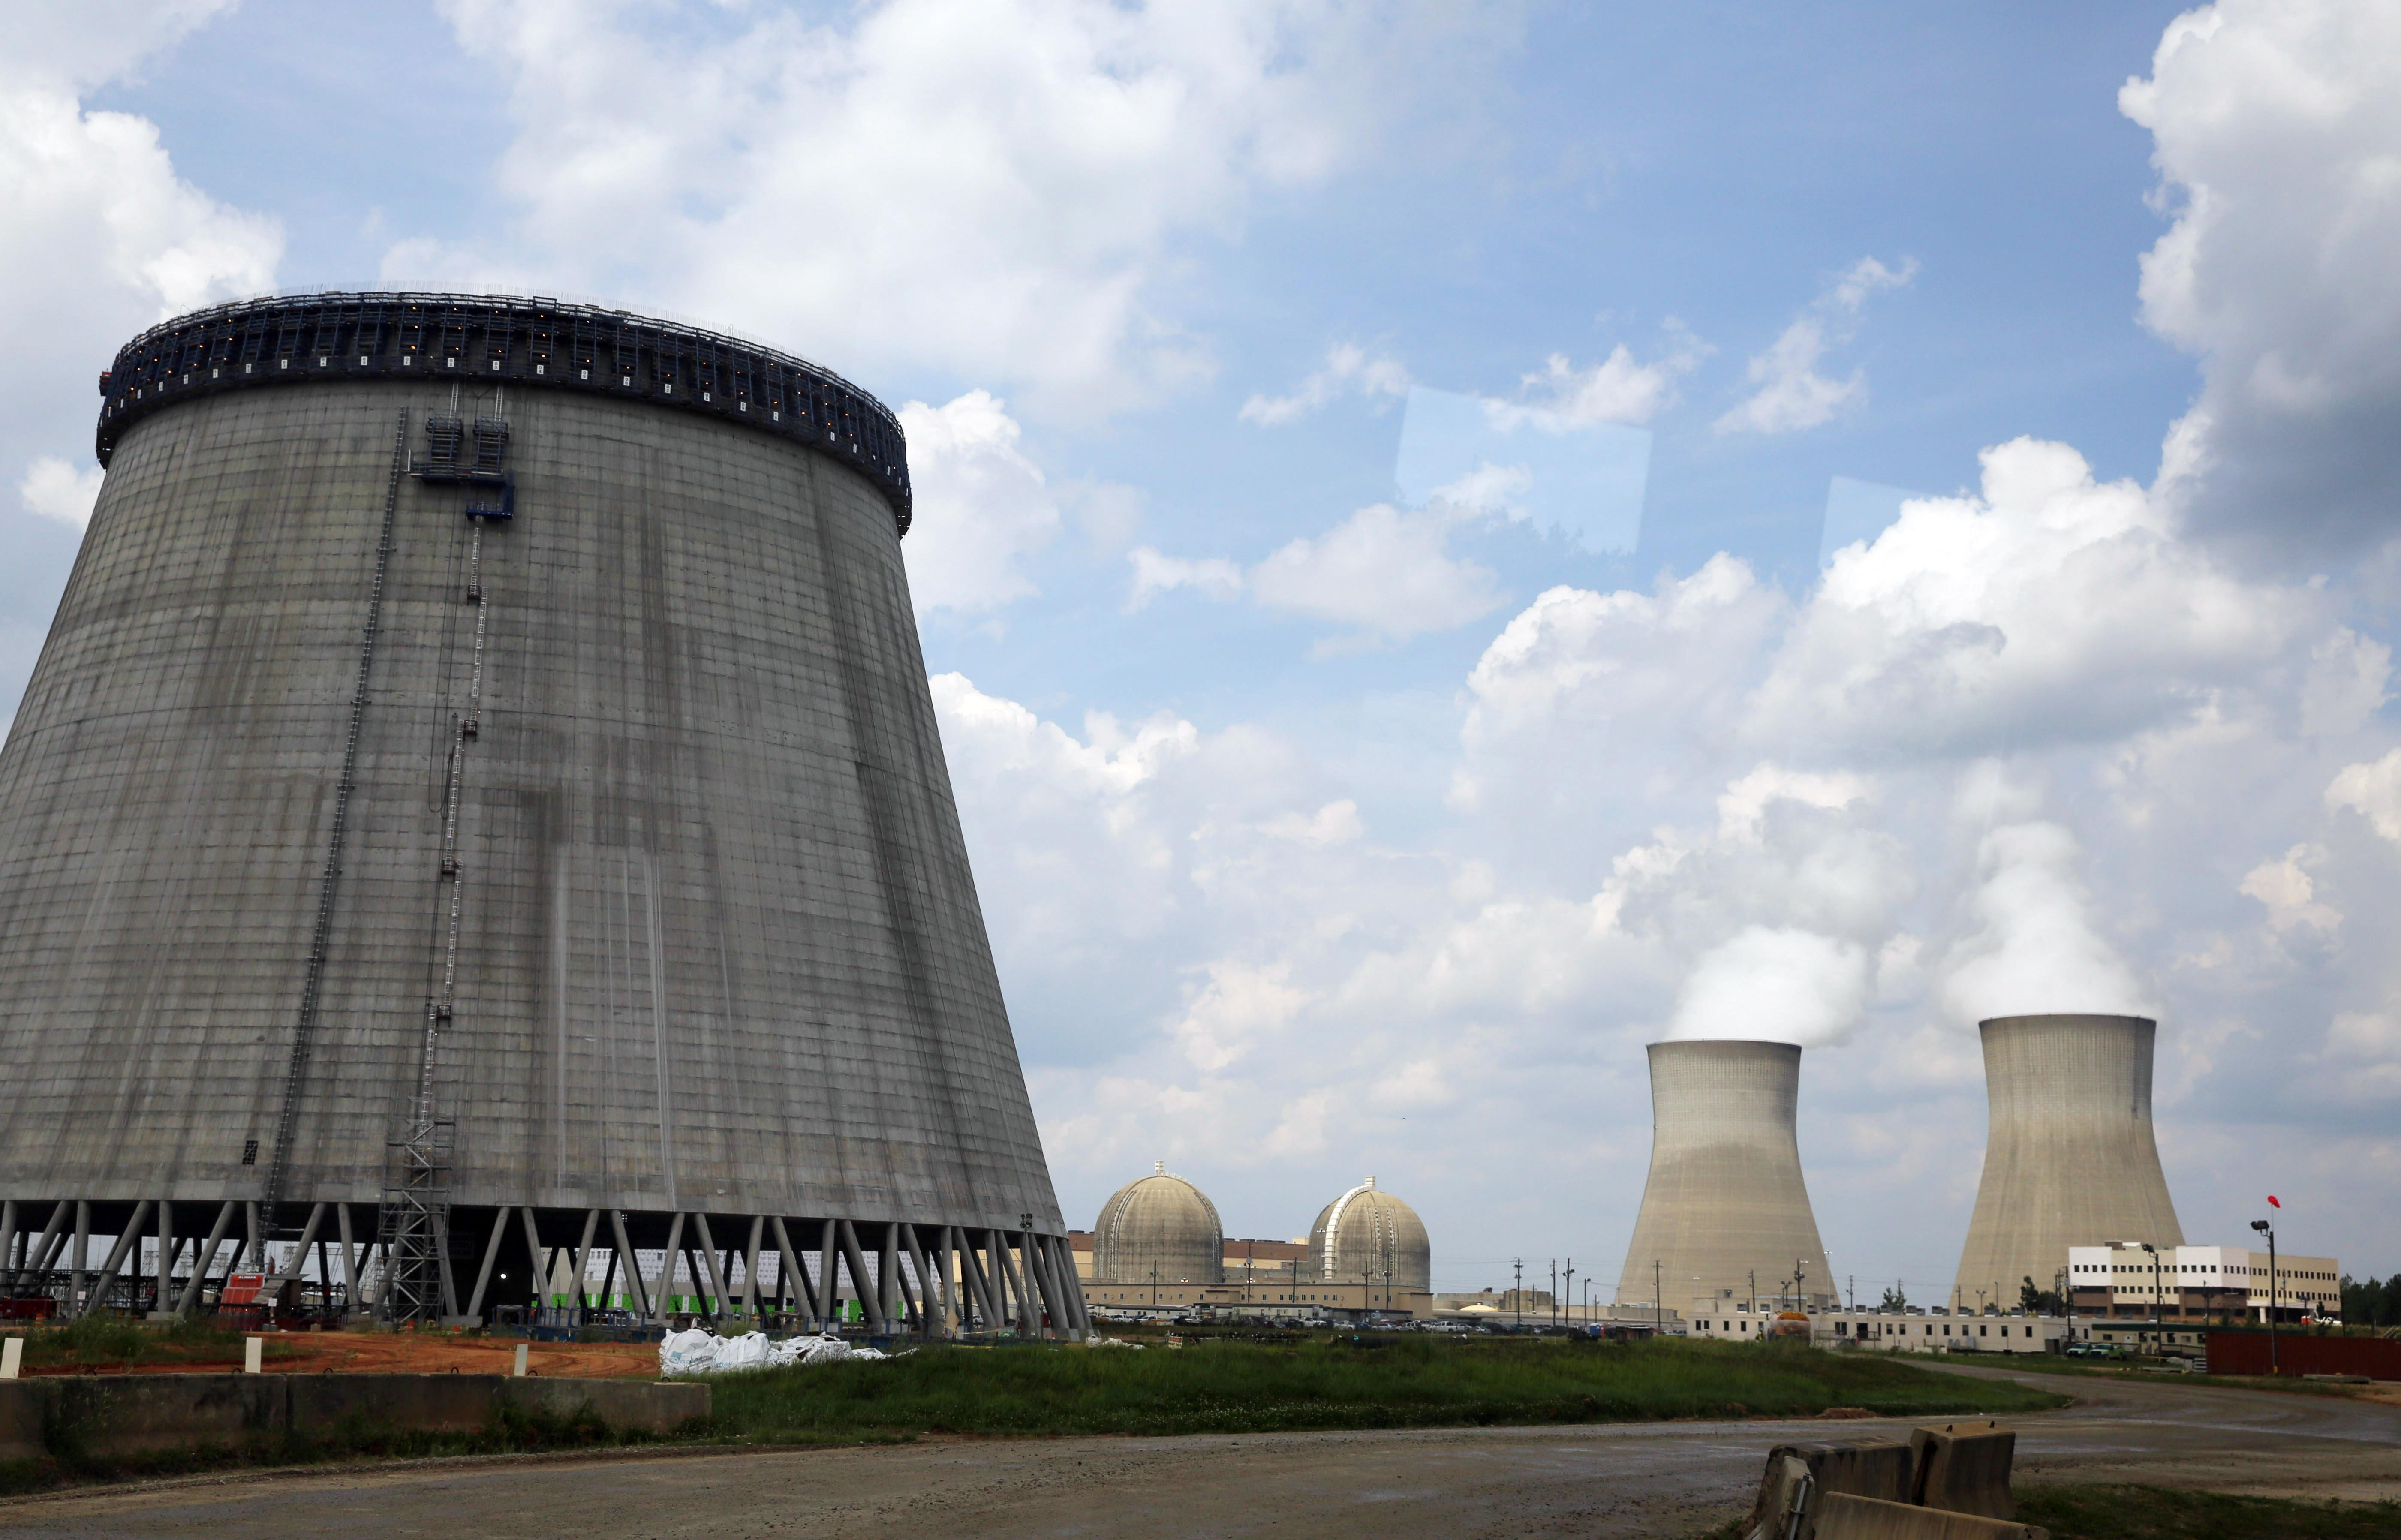 Builder projects 18 month delay for nuclear plant in Georgia